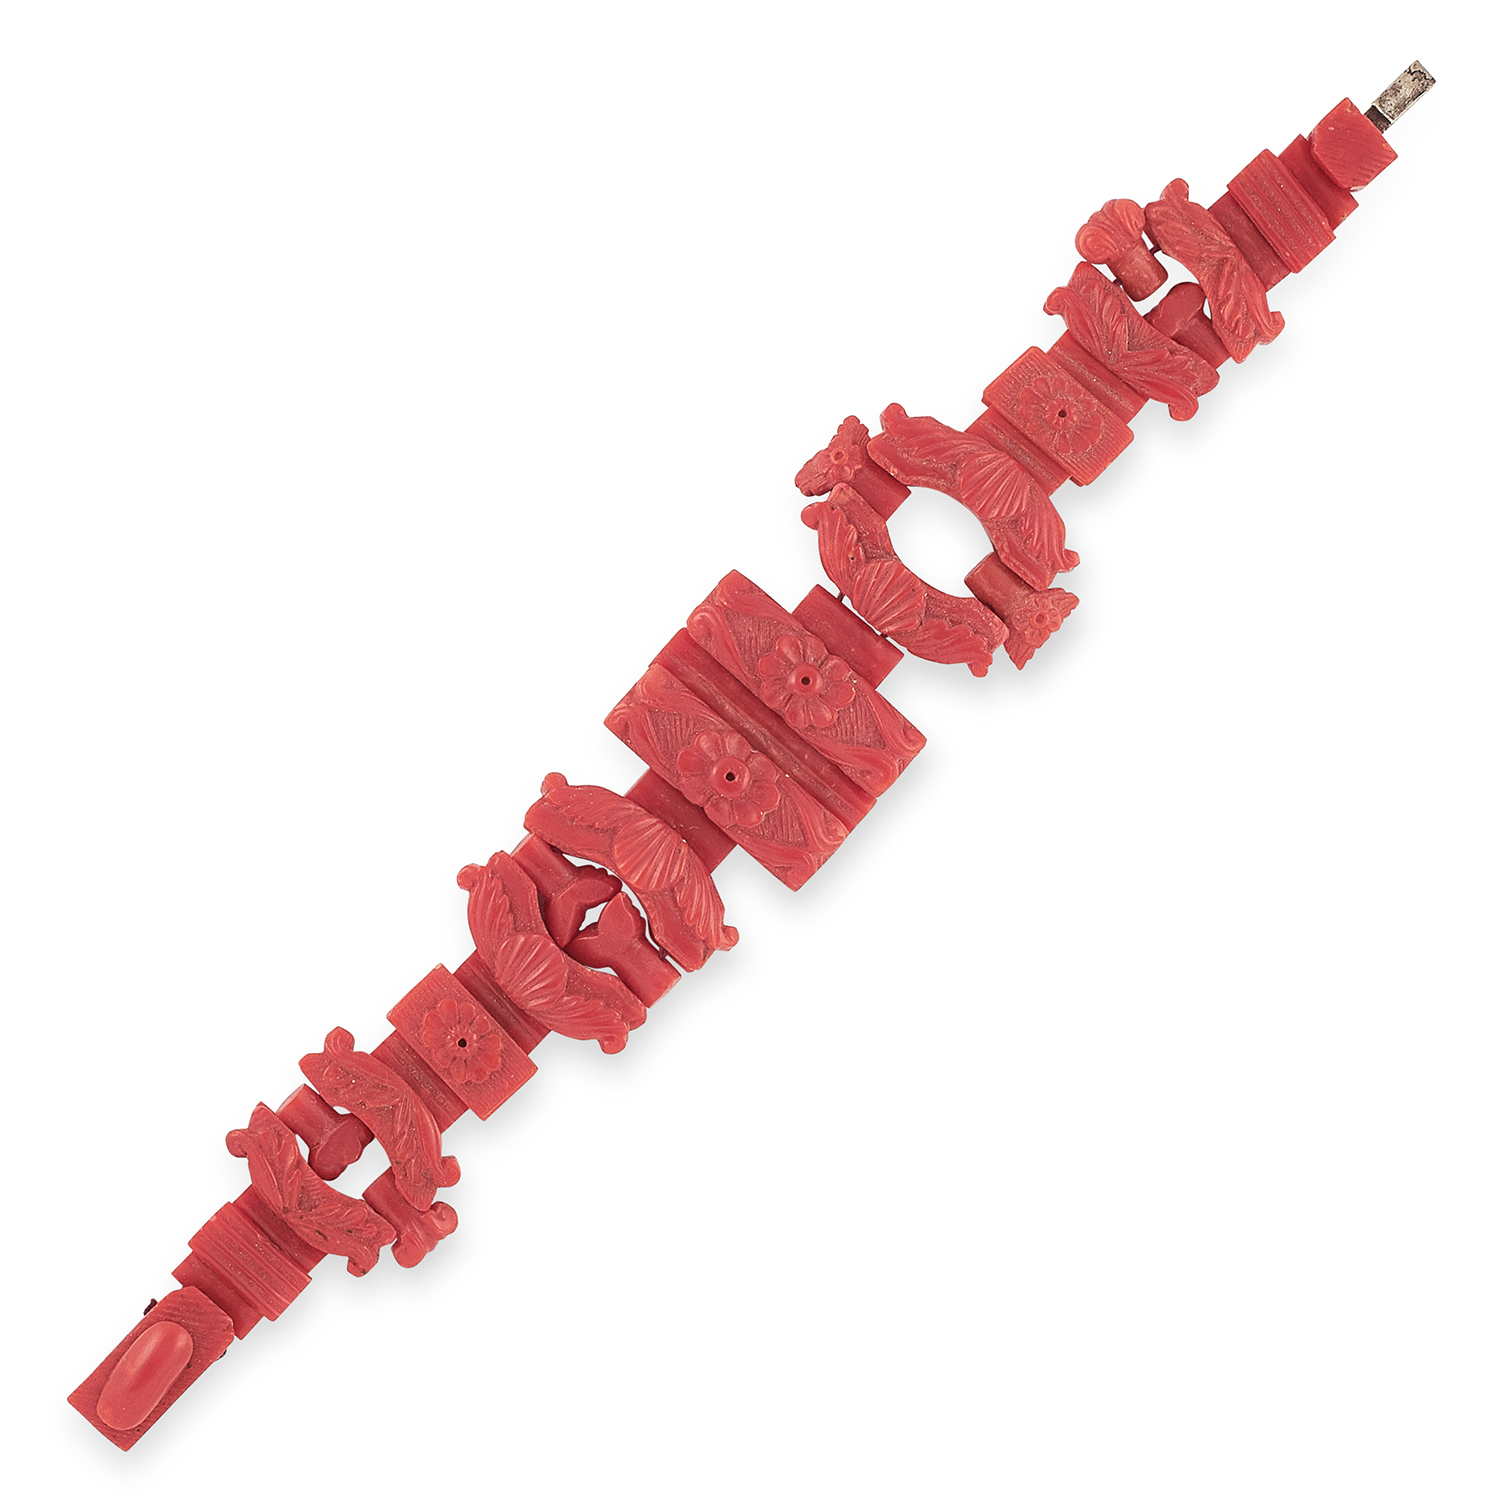 ANTIQUE CARVED CORAL BRACELET, ITALIAN CIRCA 1860 formed of various carved links with floral and